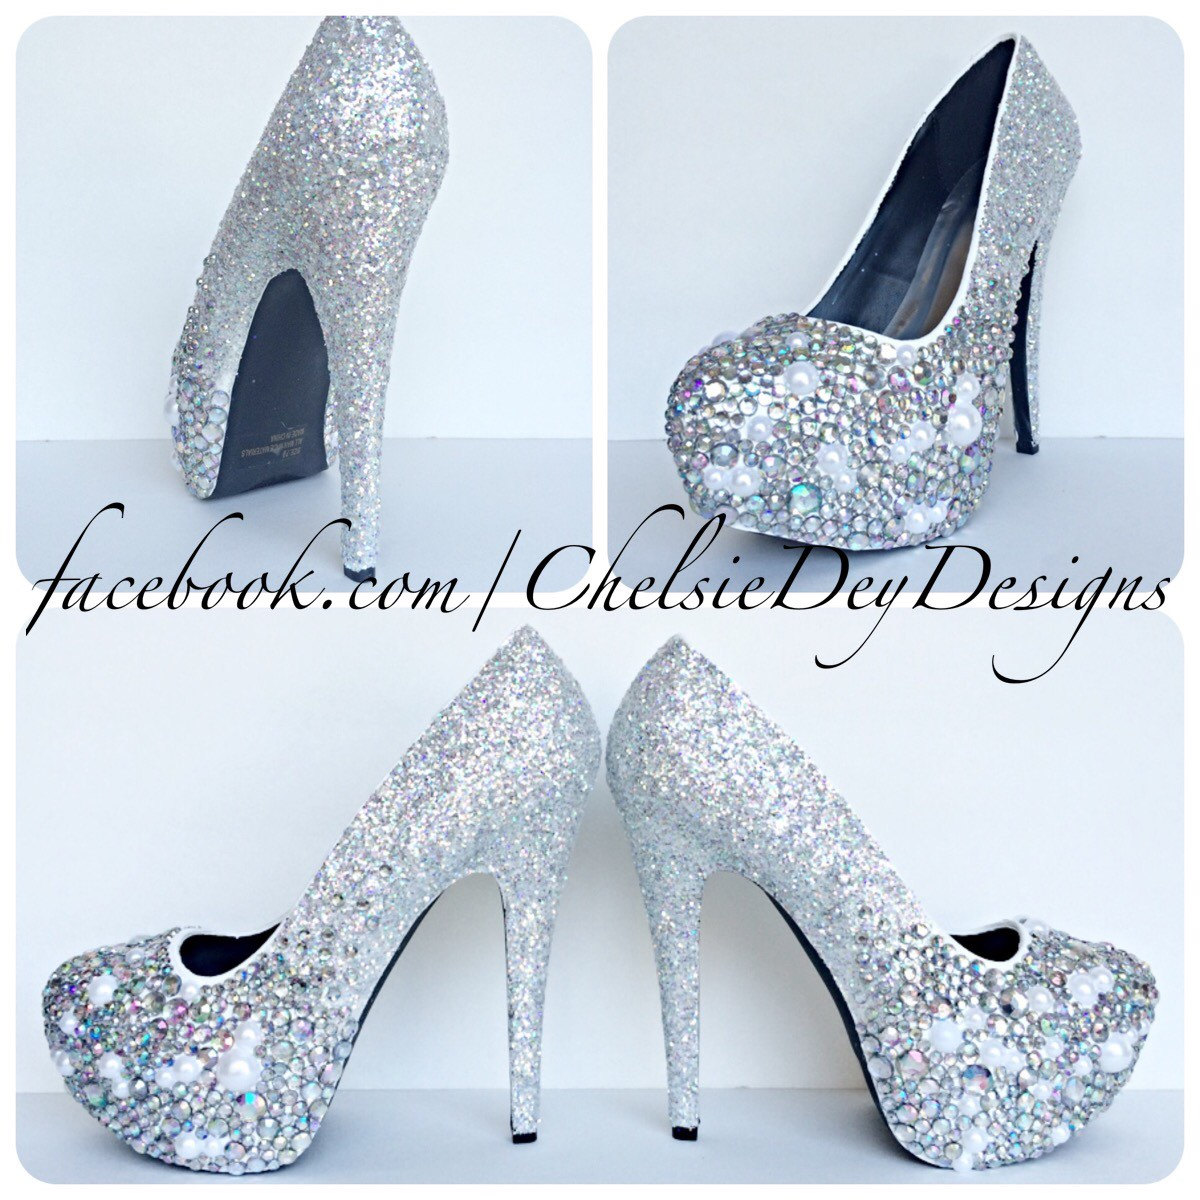 5377e75fe7e8d Rhinestone Pearl Glitter High Heels, Silver Crystal Iridescent Platform  Pumps, Ombre Wedding Shoes from Chelsie Dey Designs